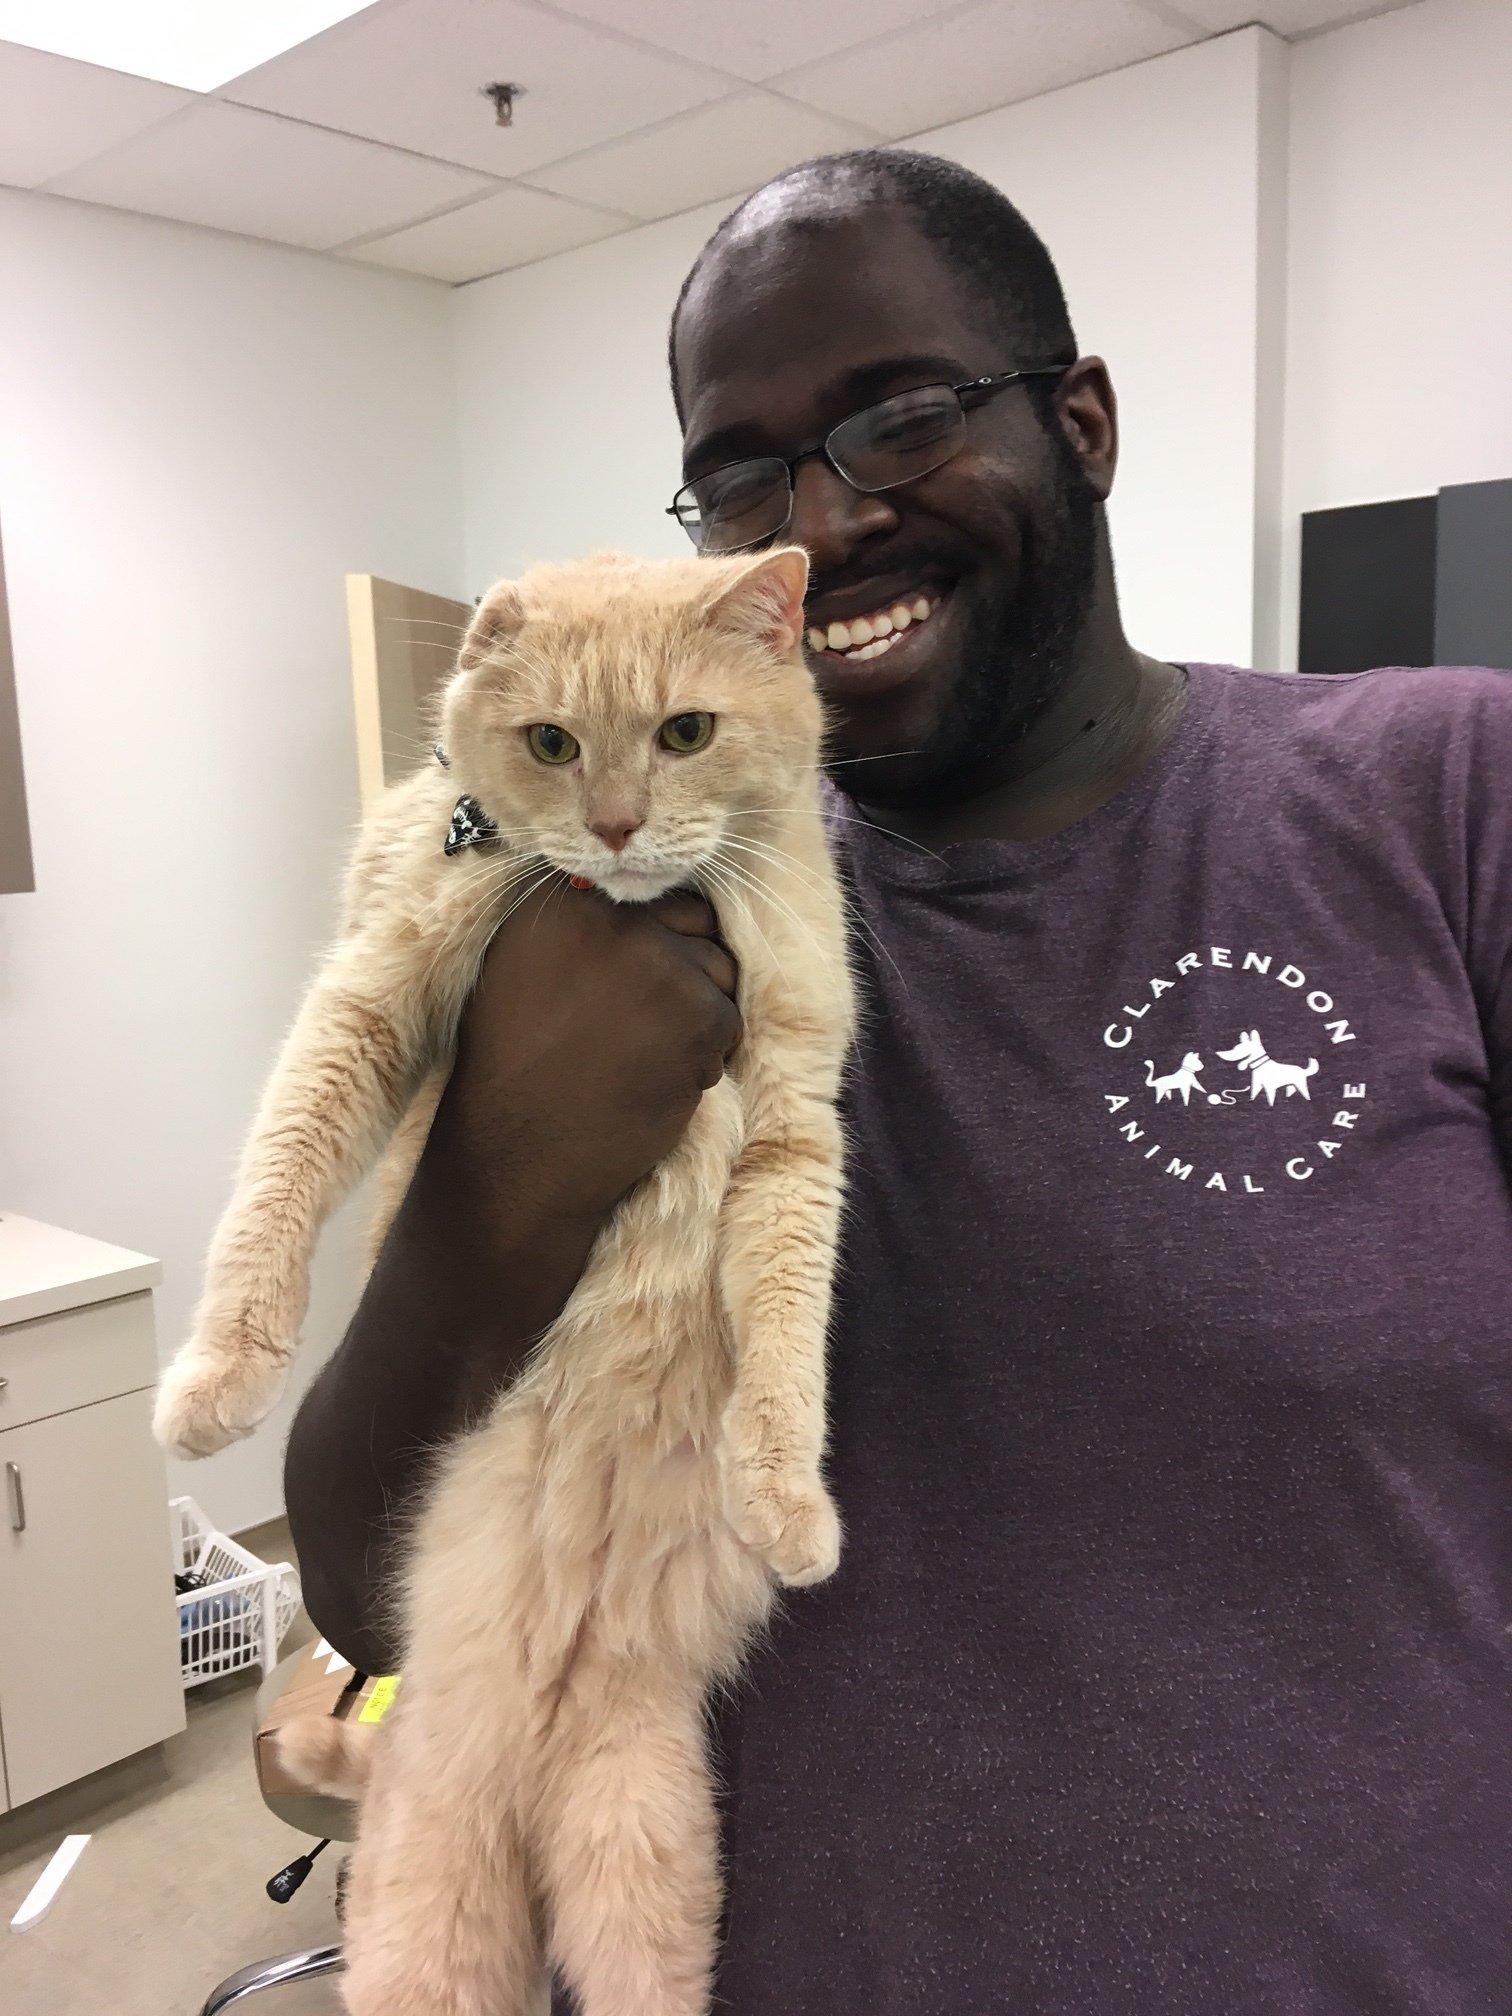 Clarendon Animal Care Veterinary Clinic Arlington Virginia Mike with Tommy